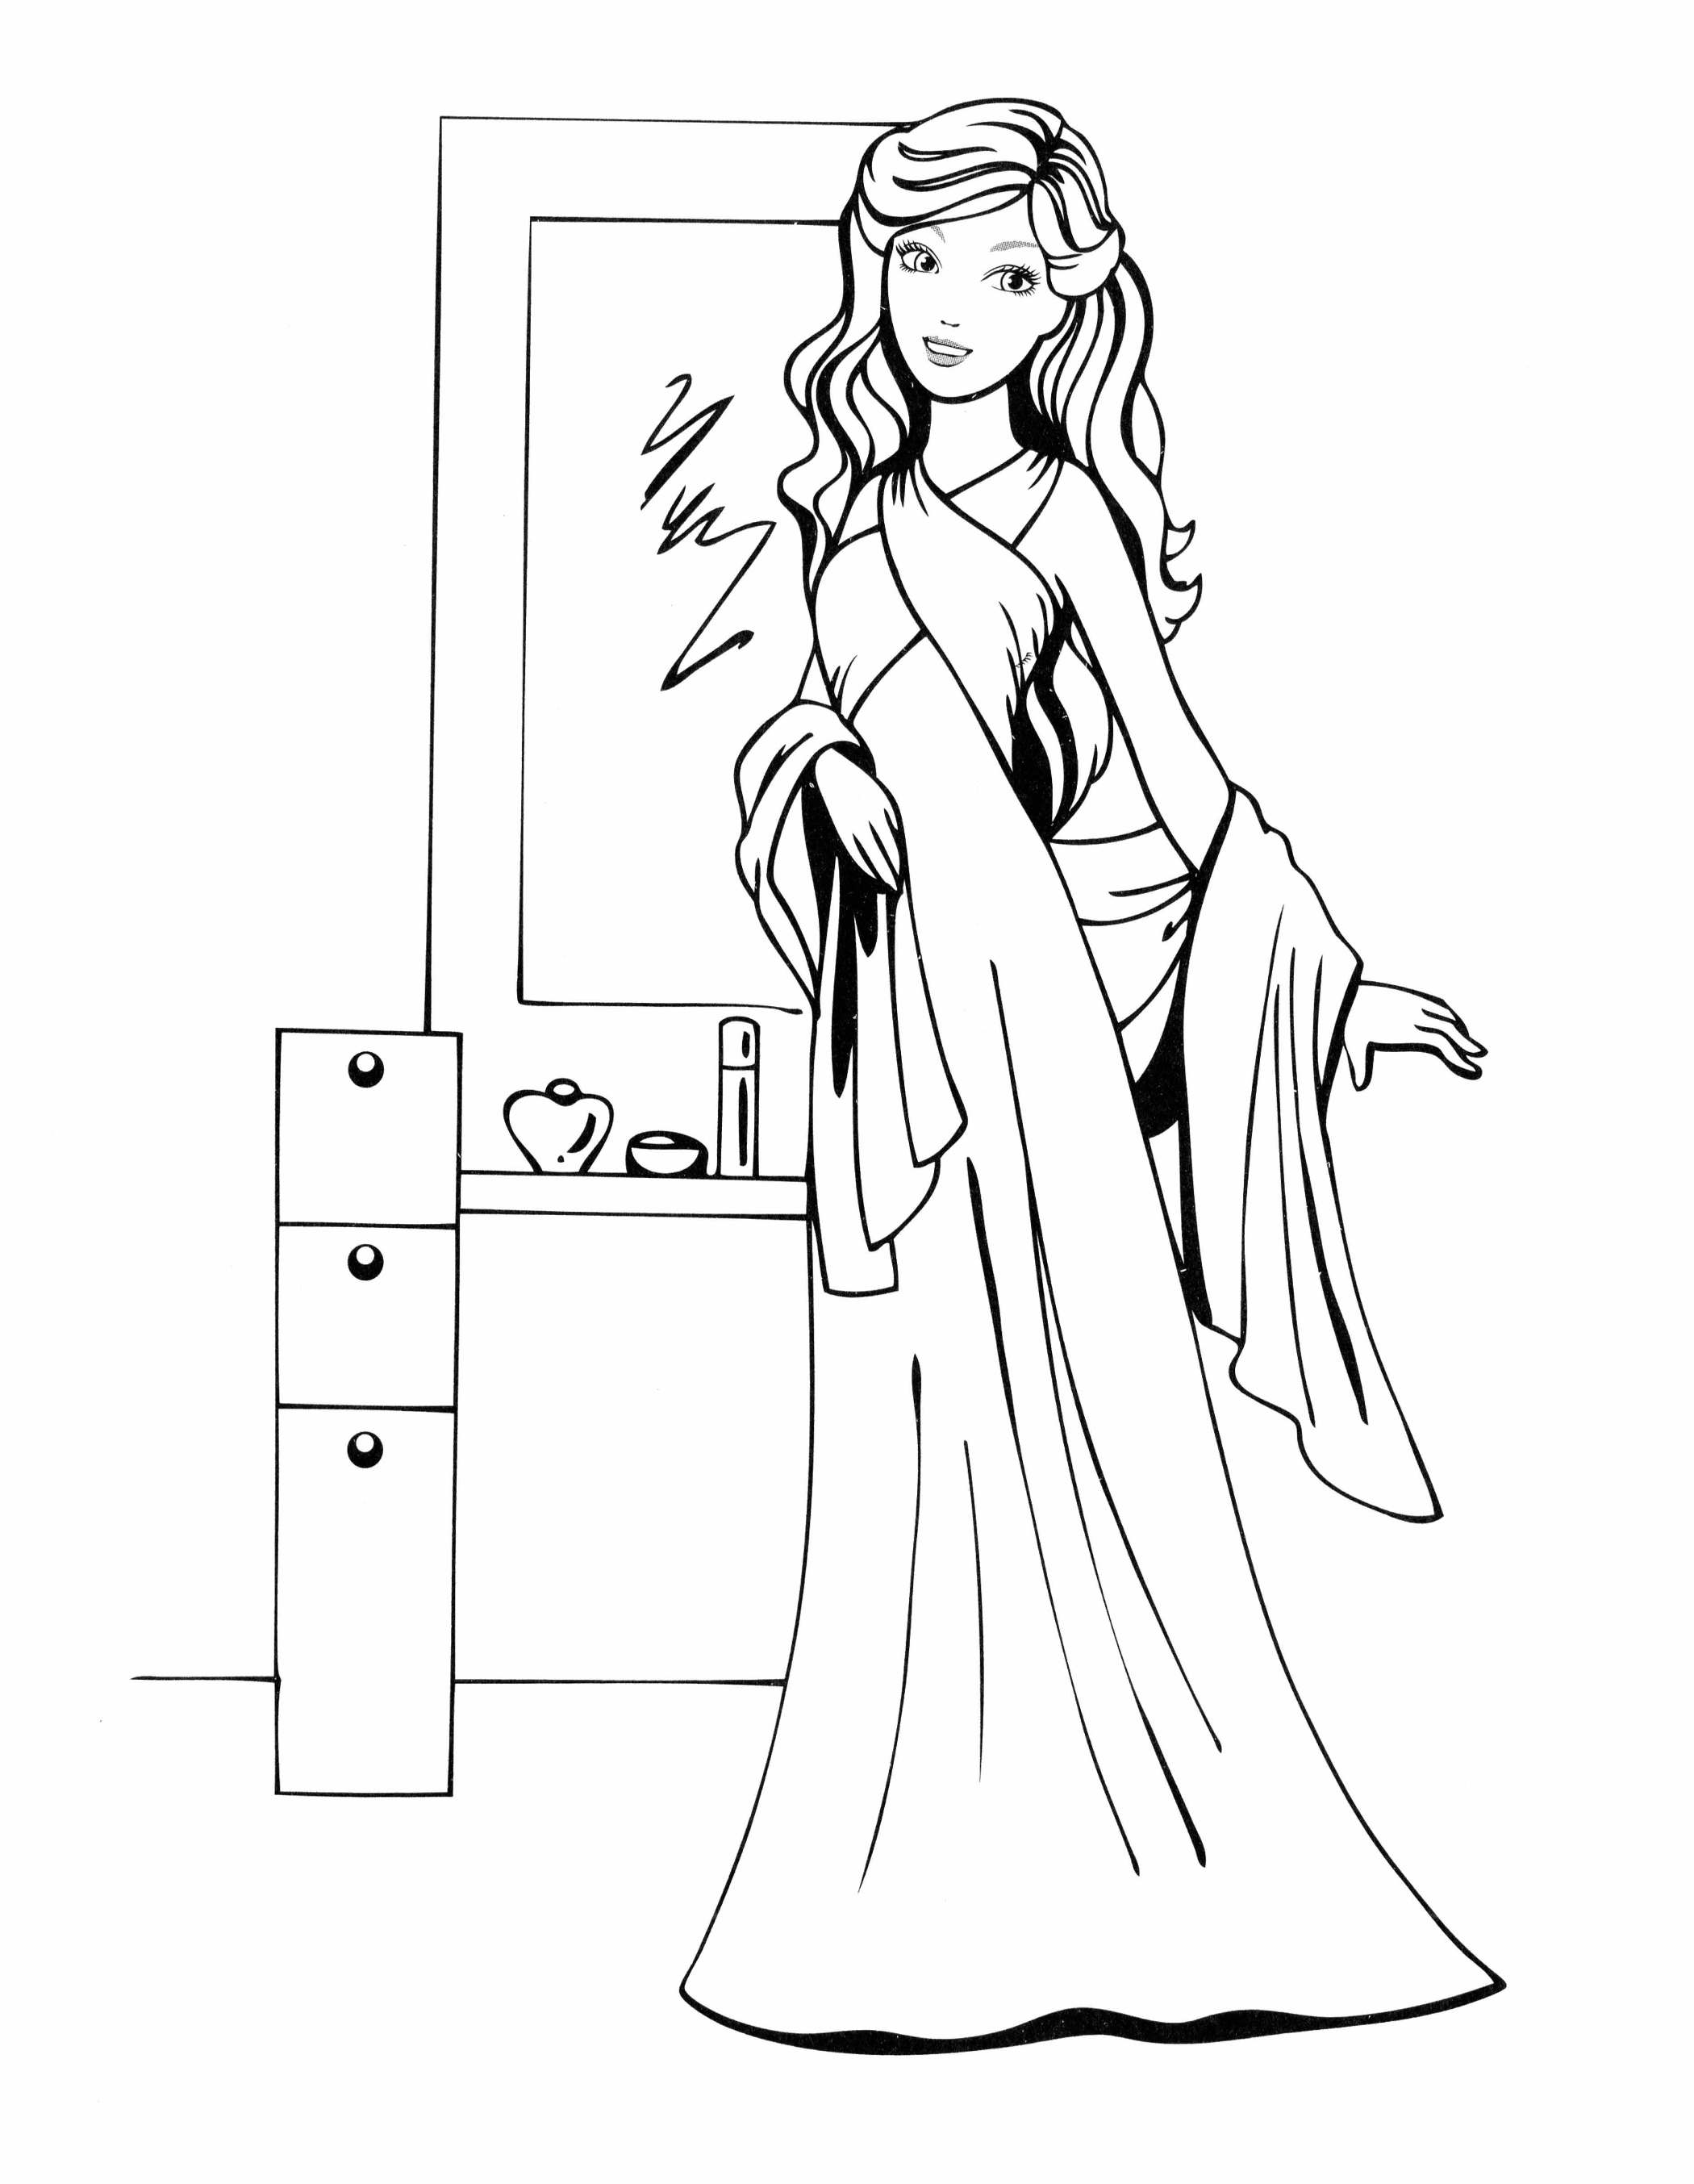 coloring pages for girls age 11 coloring pages for 8910 year old girls to download and 11 pages for coloring age girls